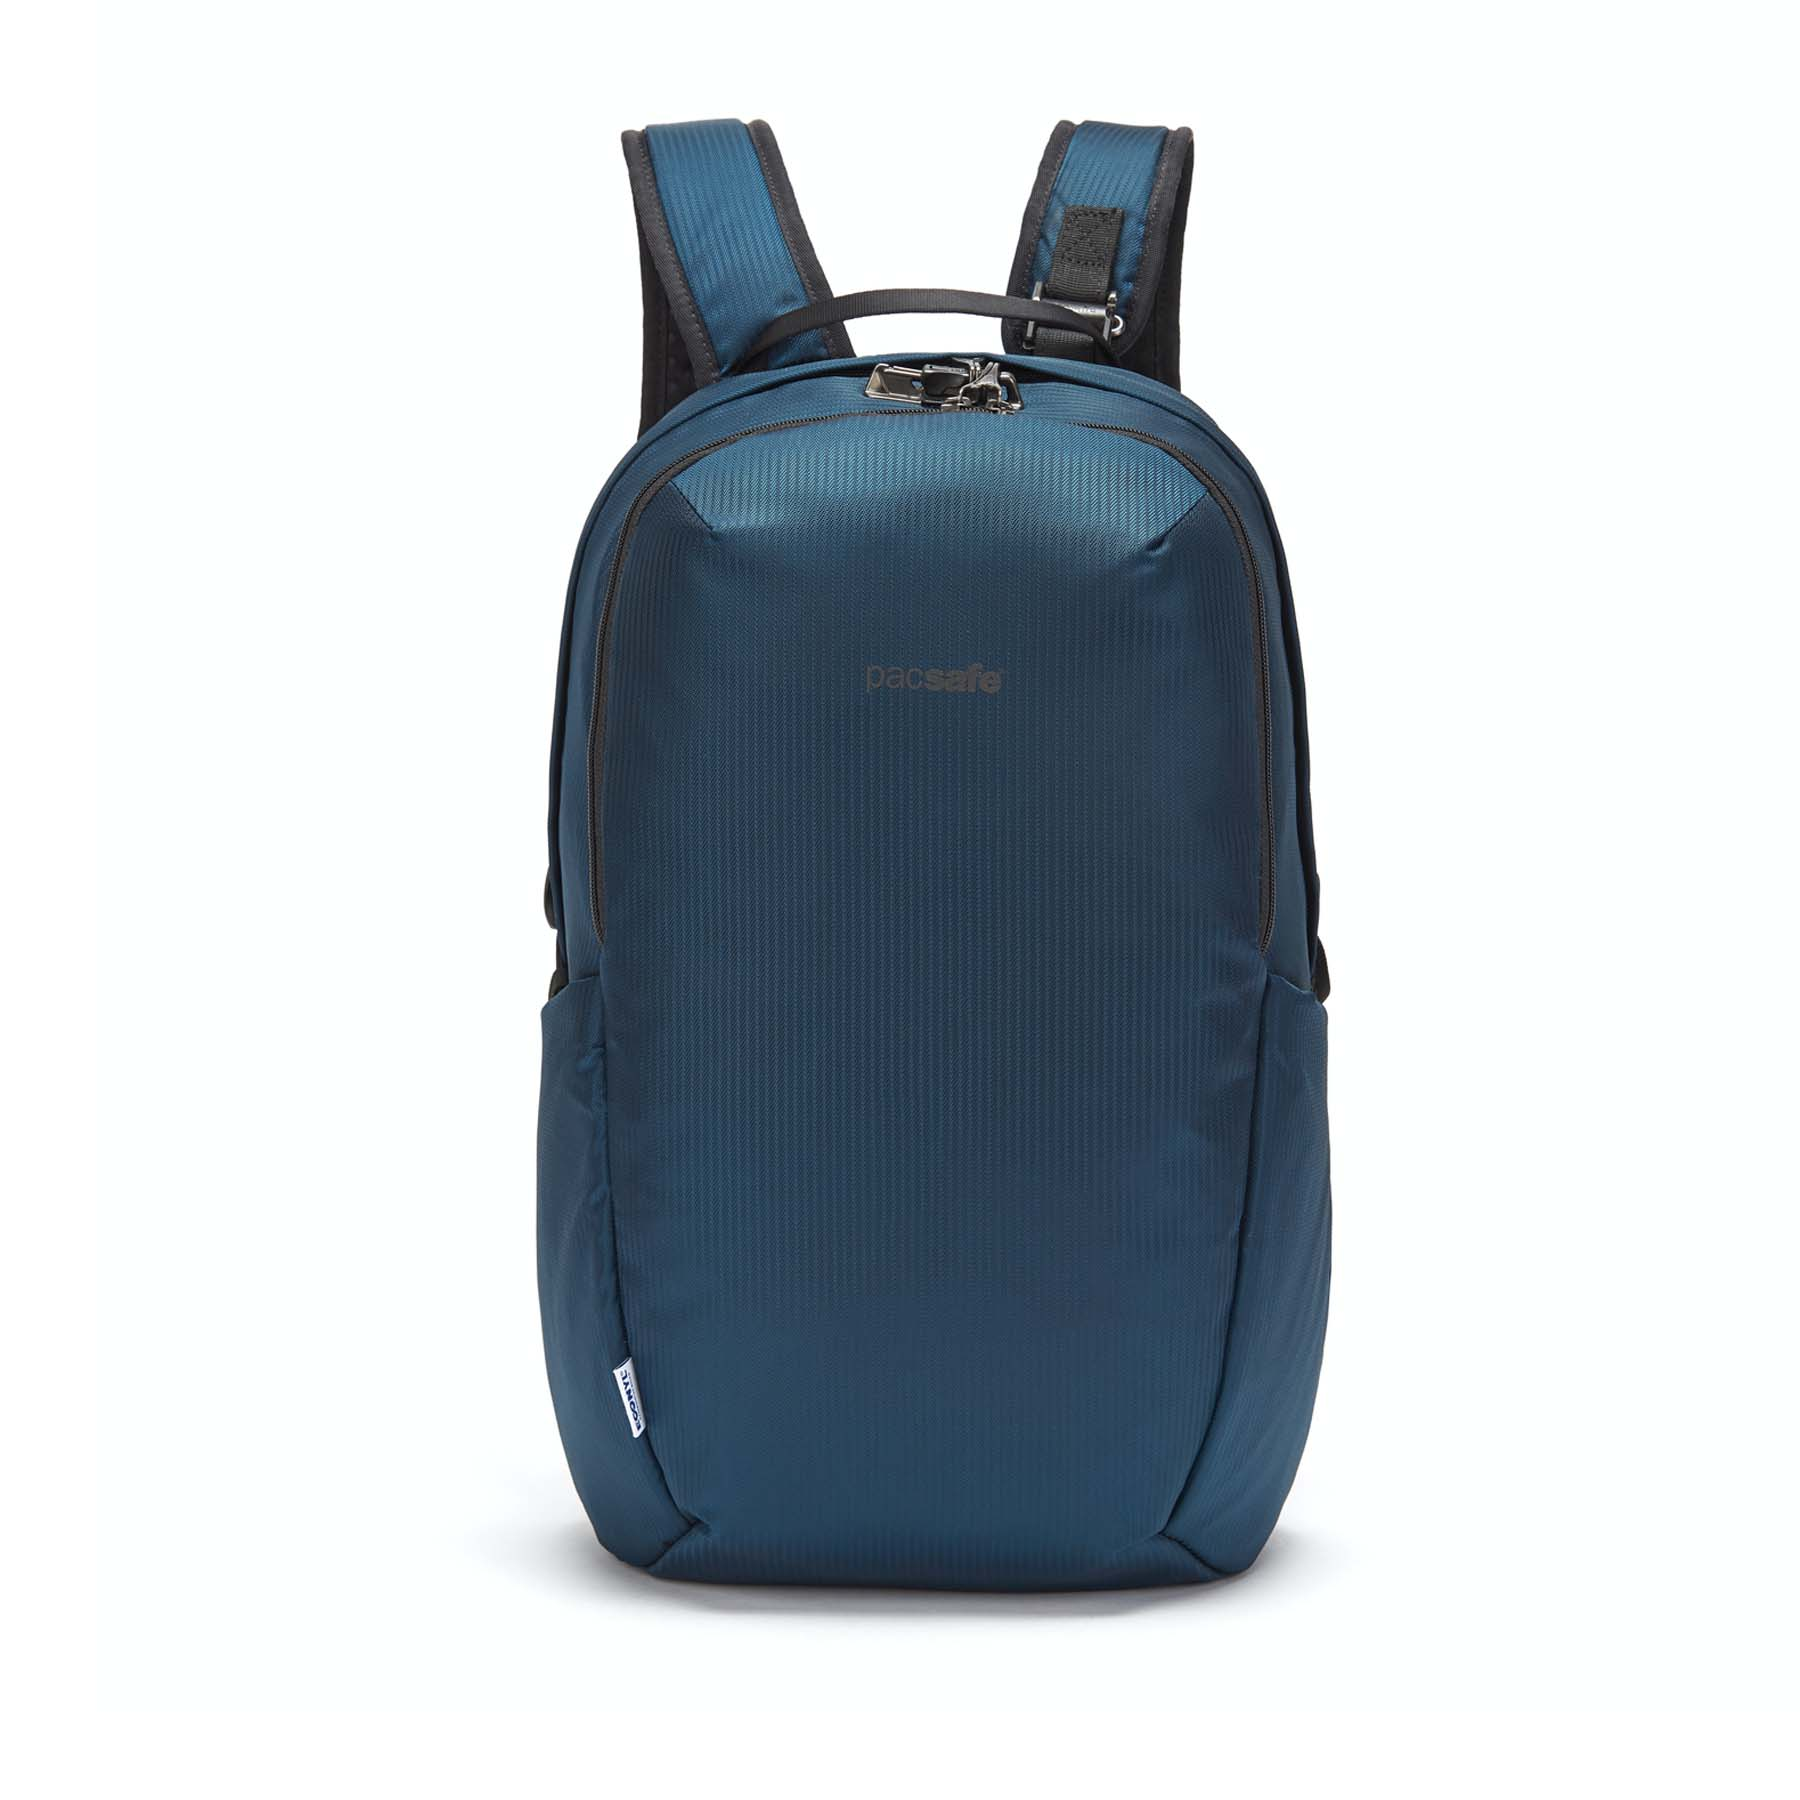 Pacsafe S/S 2022 Lifestyle Backpacks